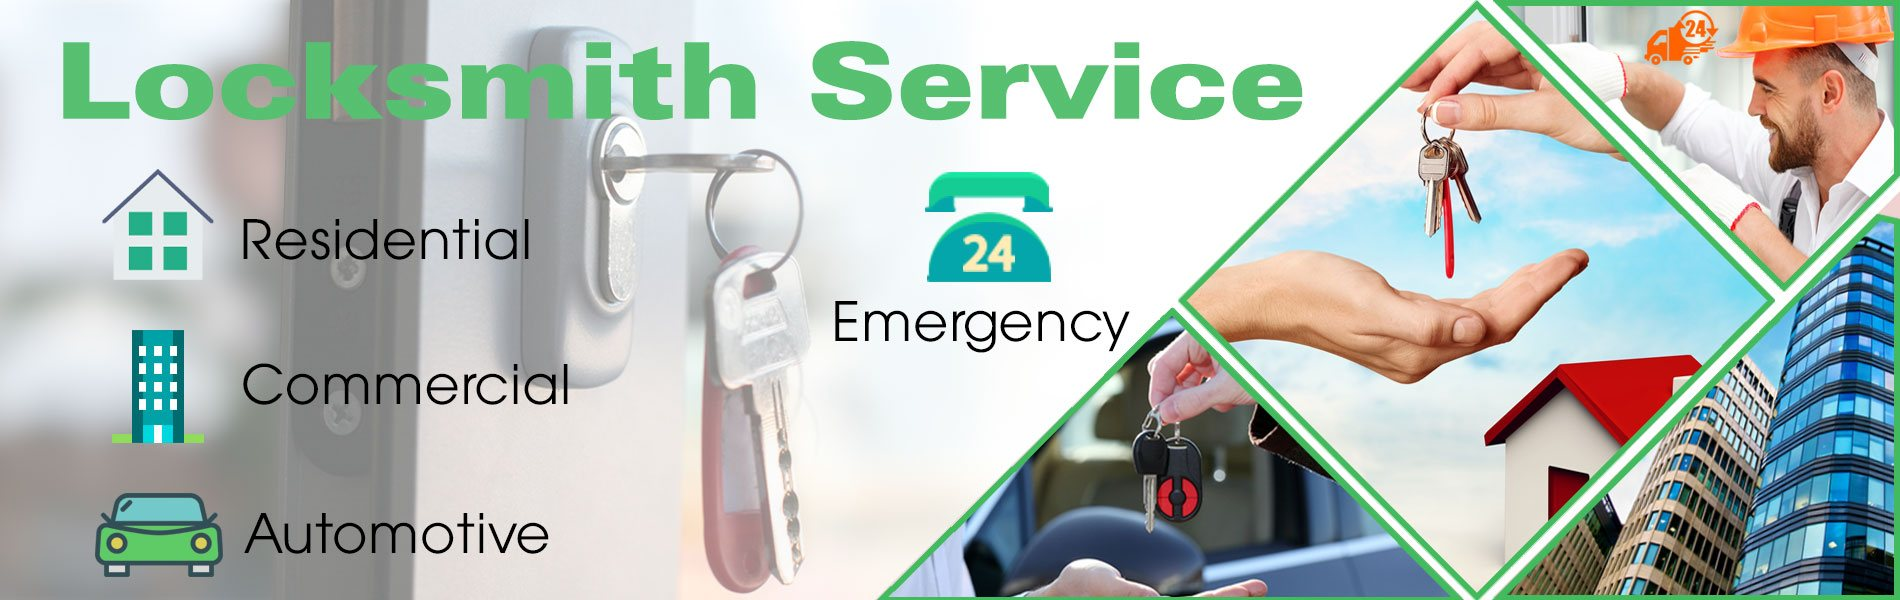 Lock Safe Services Rowlett, TX 972-512-6391